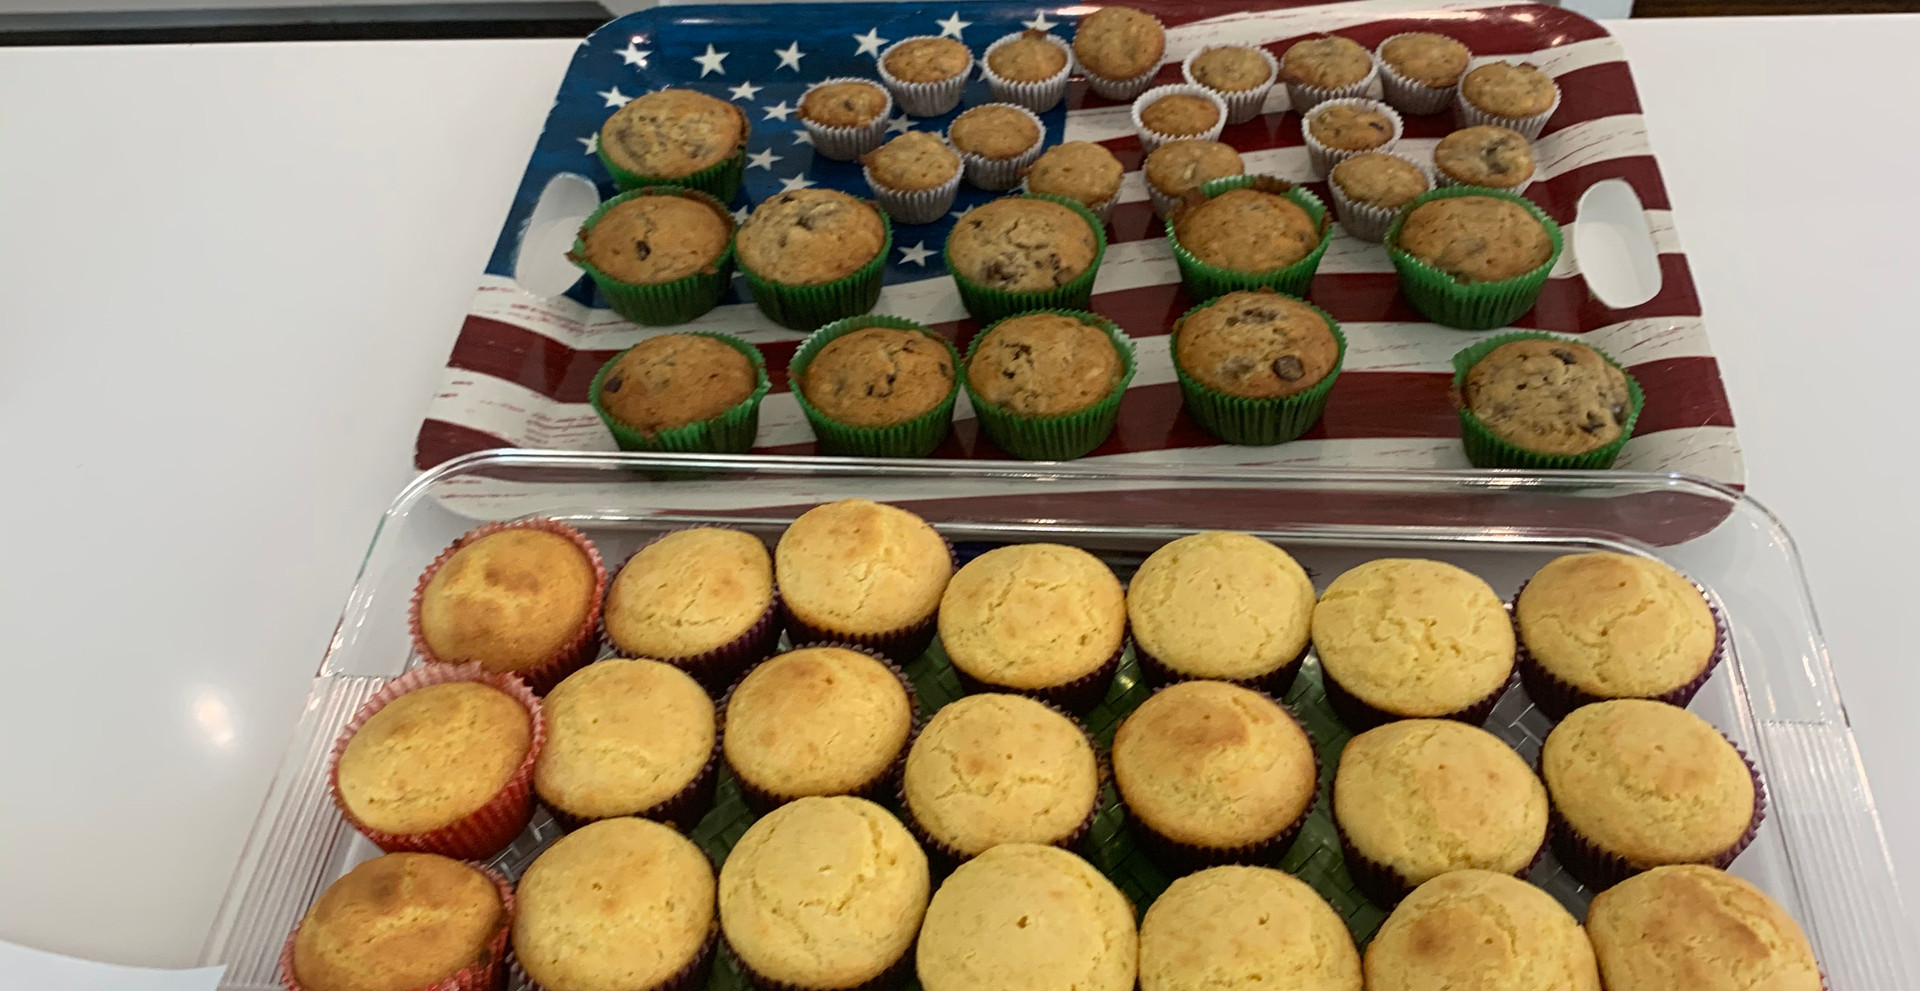 Baked goods made by Scarsdale volunteers